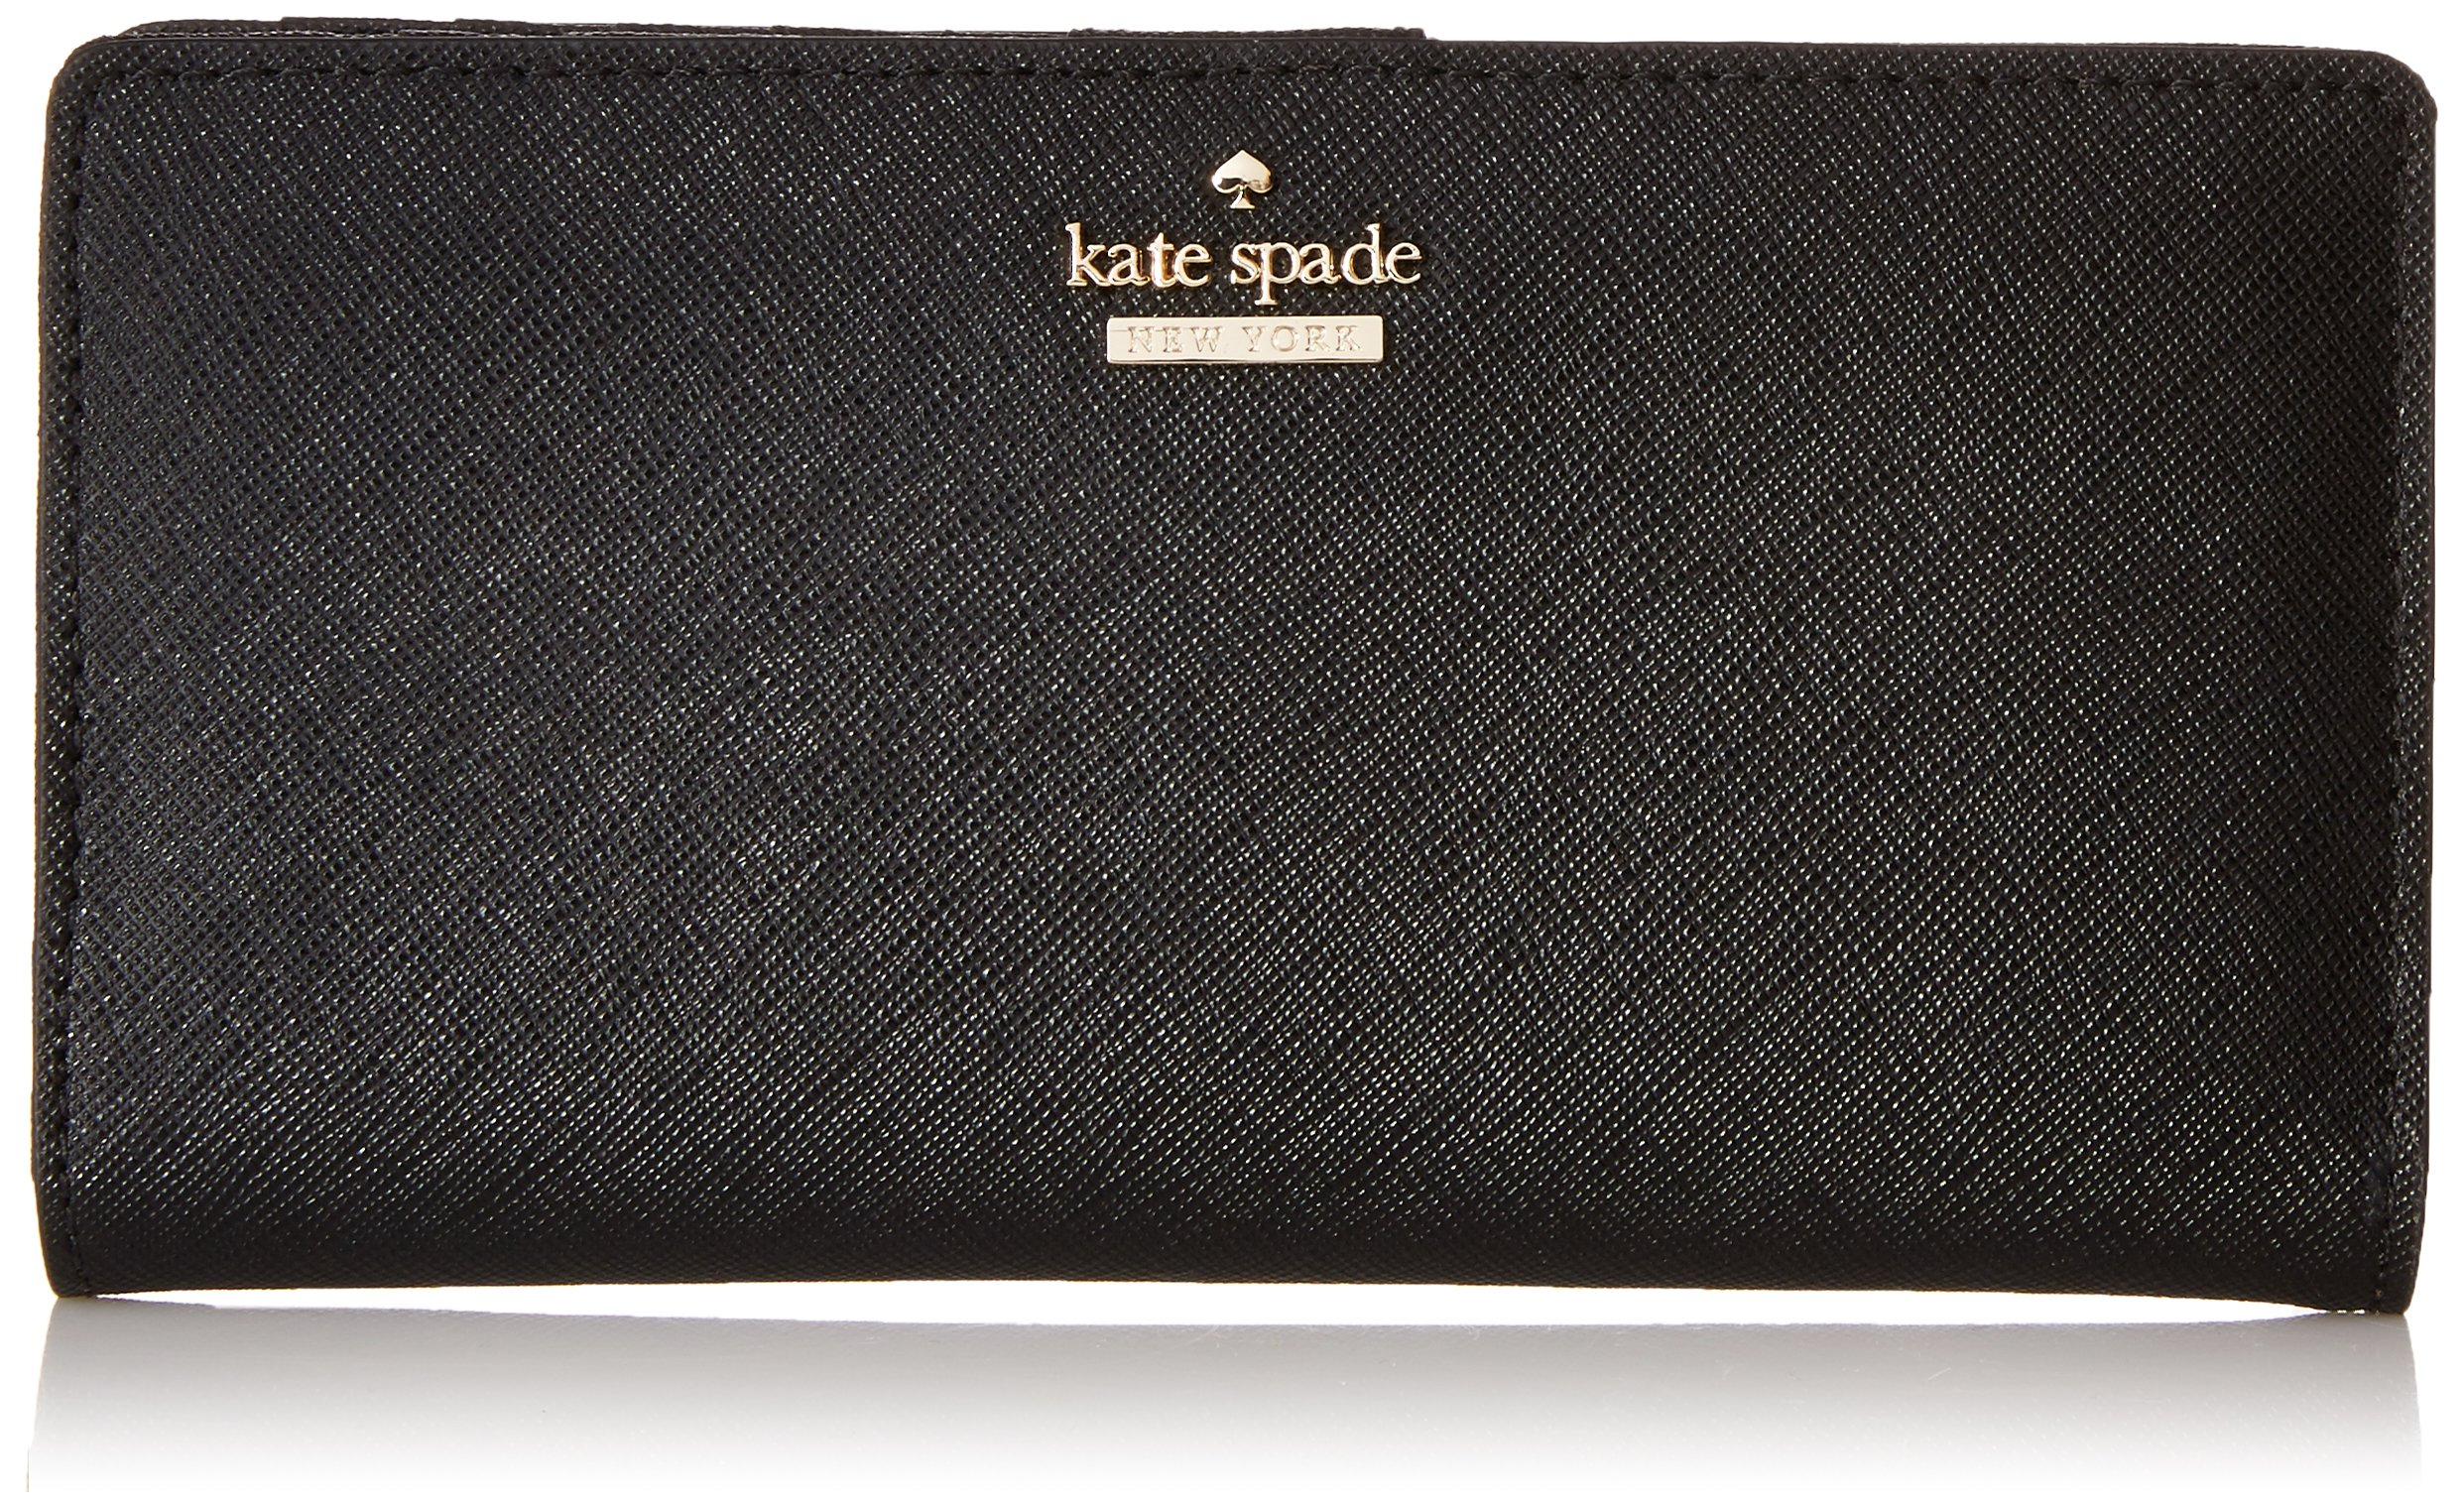 kate spade new york Cameron Street Stacy, Black by Kate Spade New York